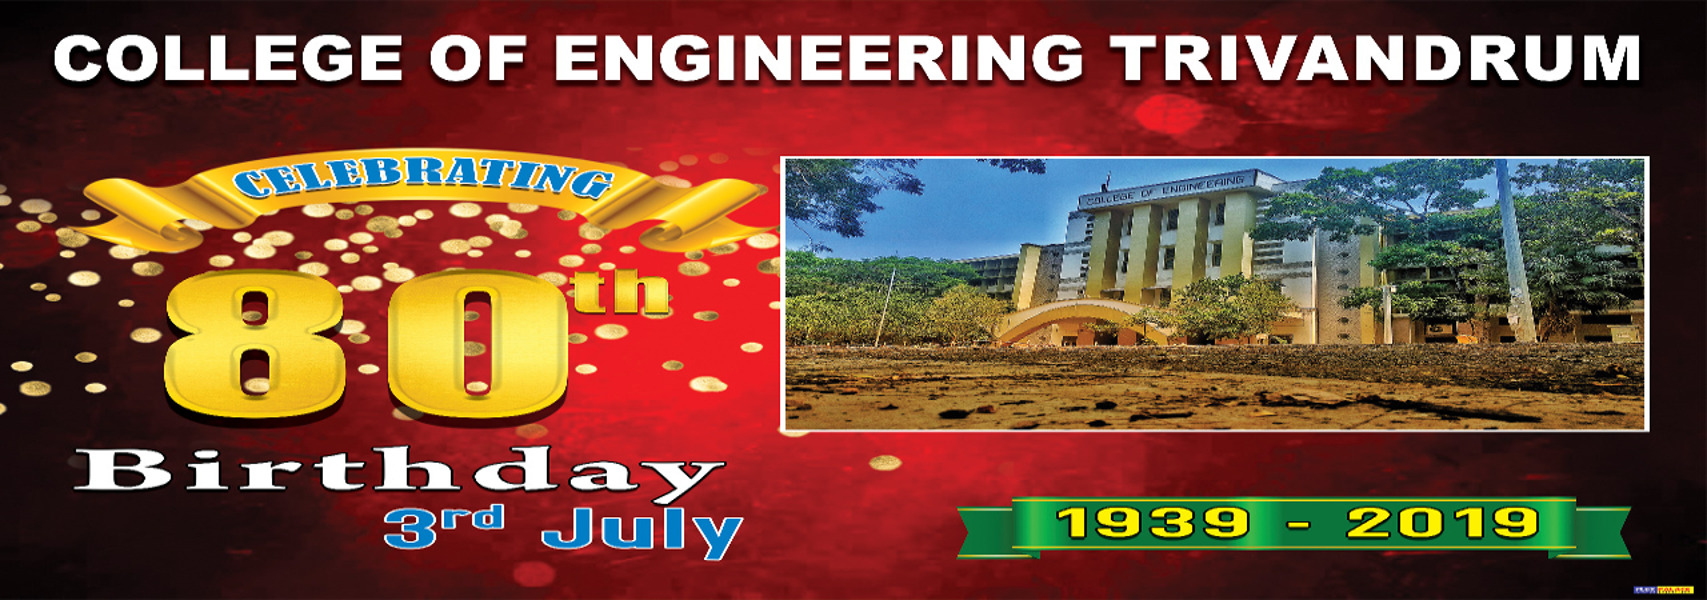 Home - College of Engineering Trivandrum